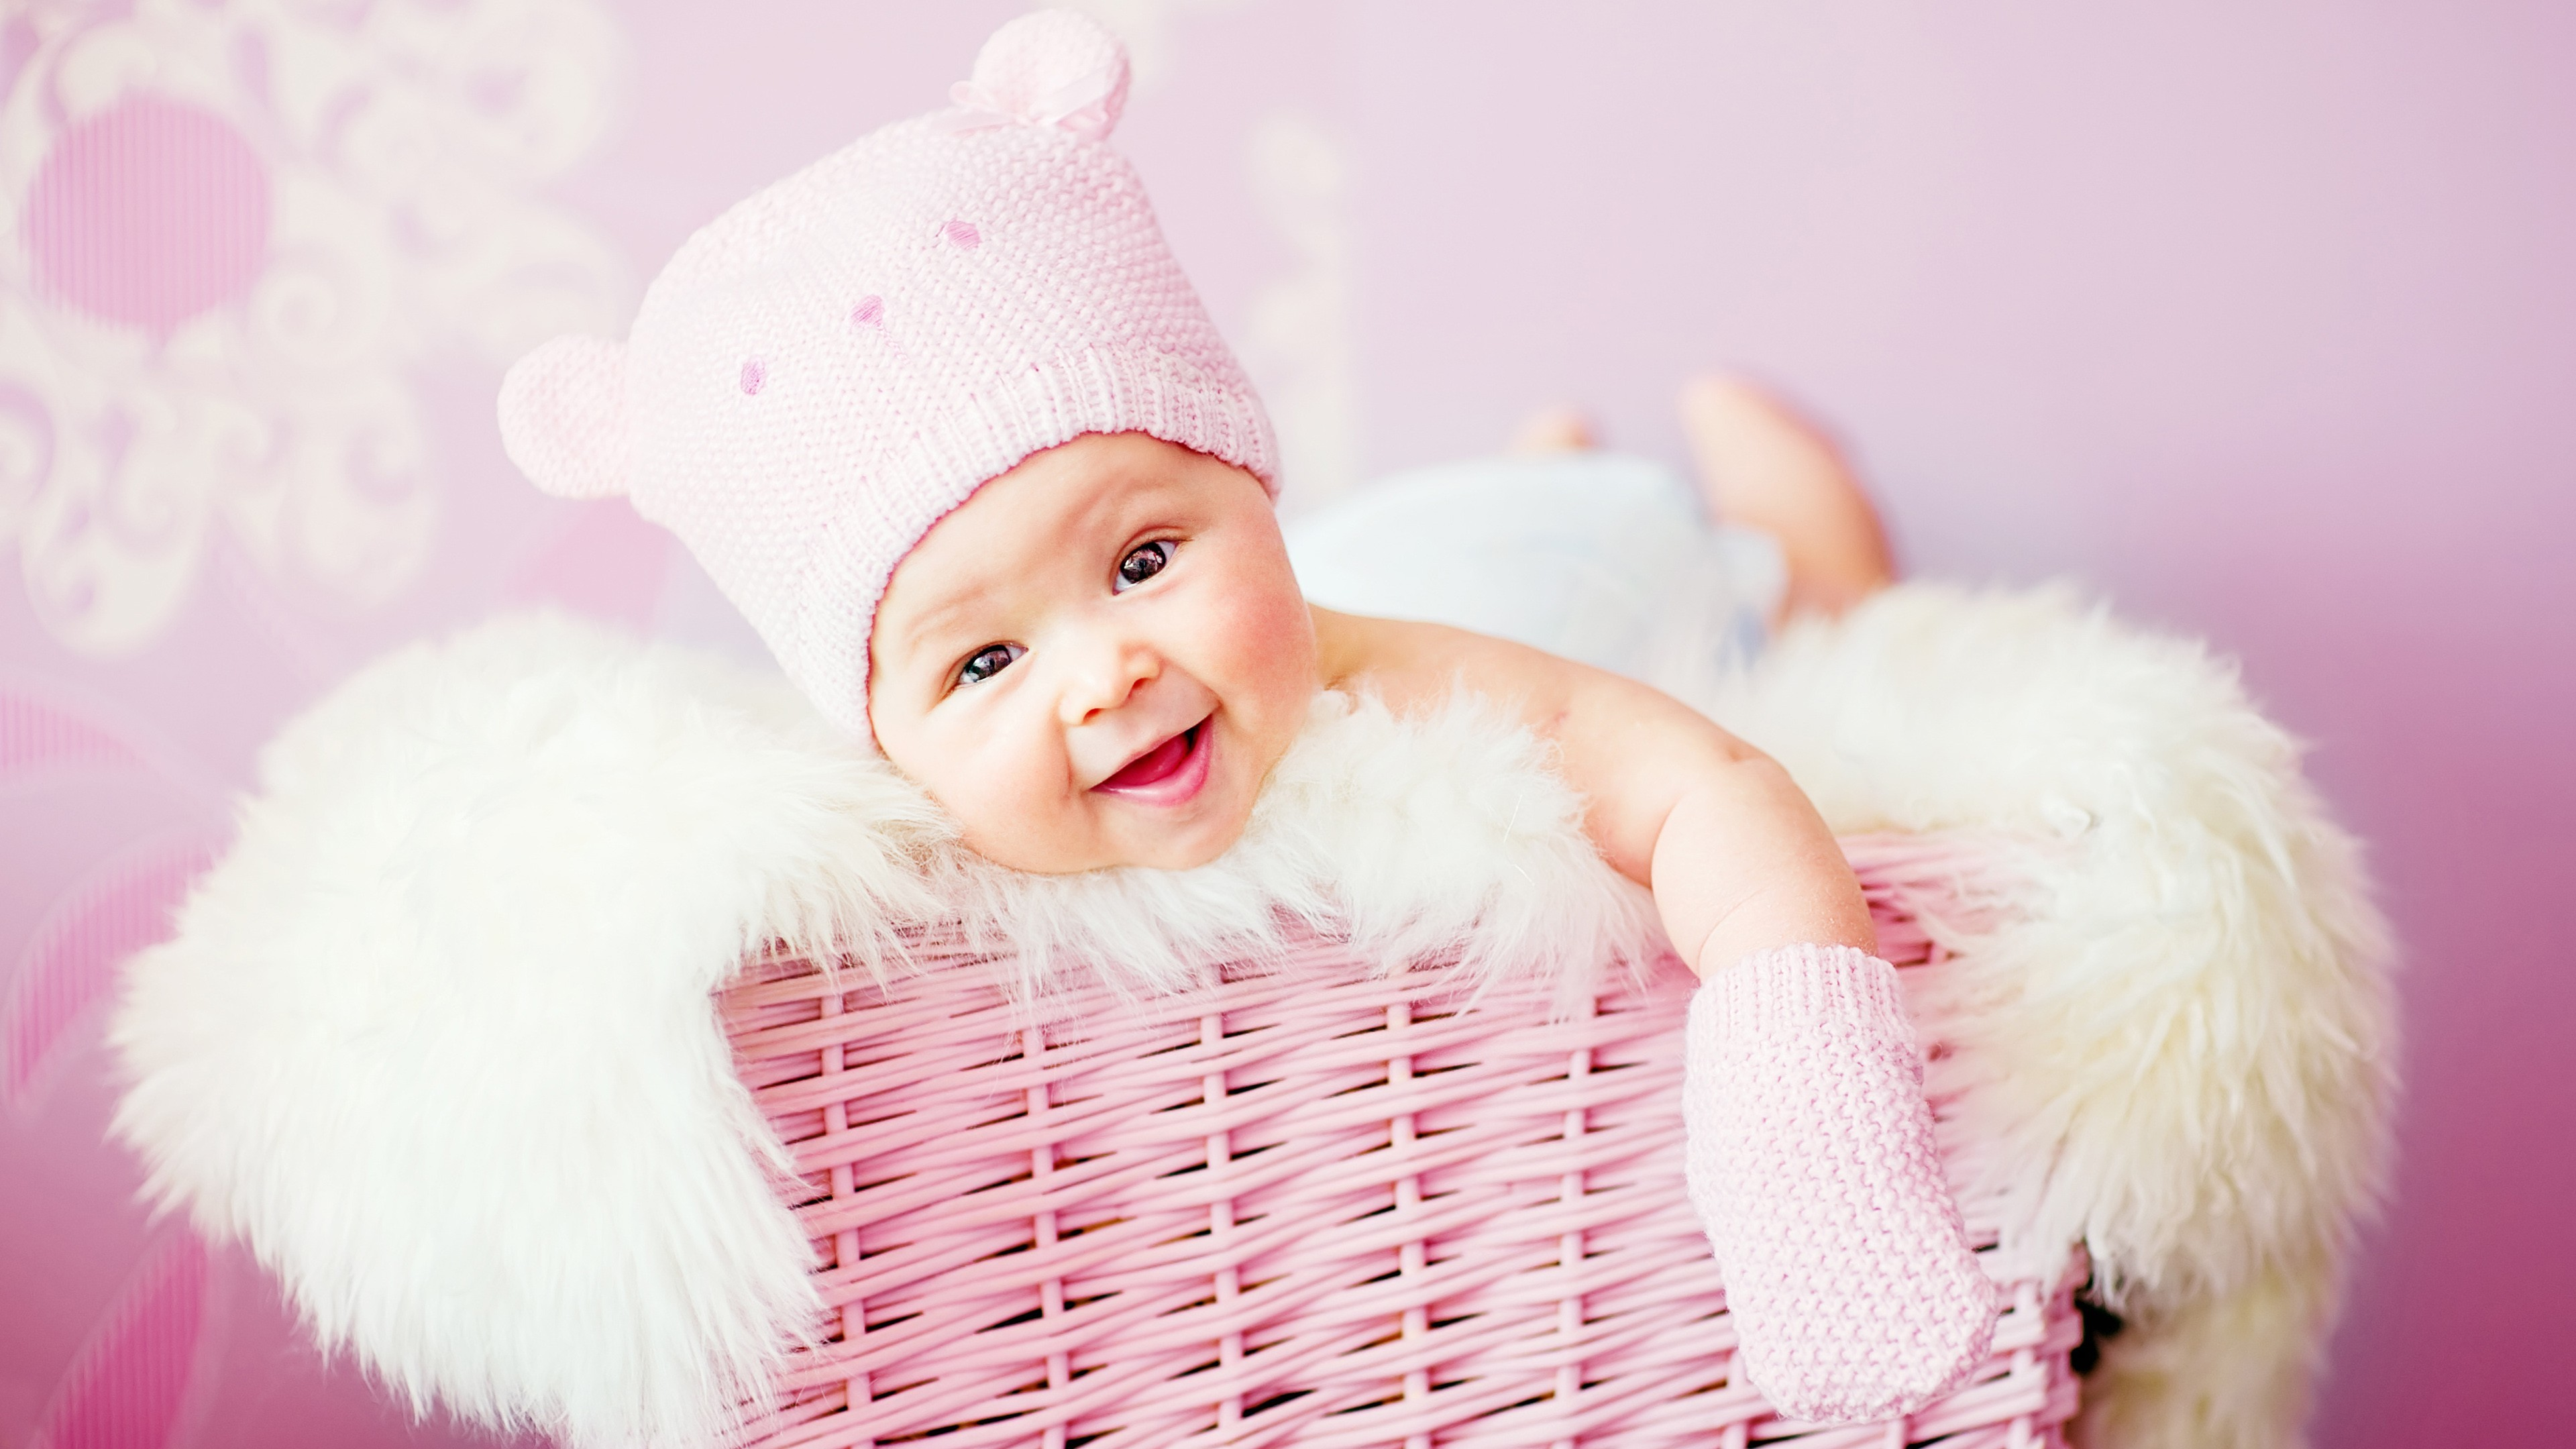 3840x2160 Cute Baby Wallpapers Cute Babies Pictures Cute Baby Girl.